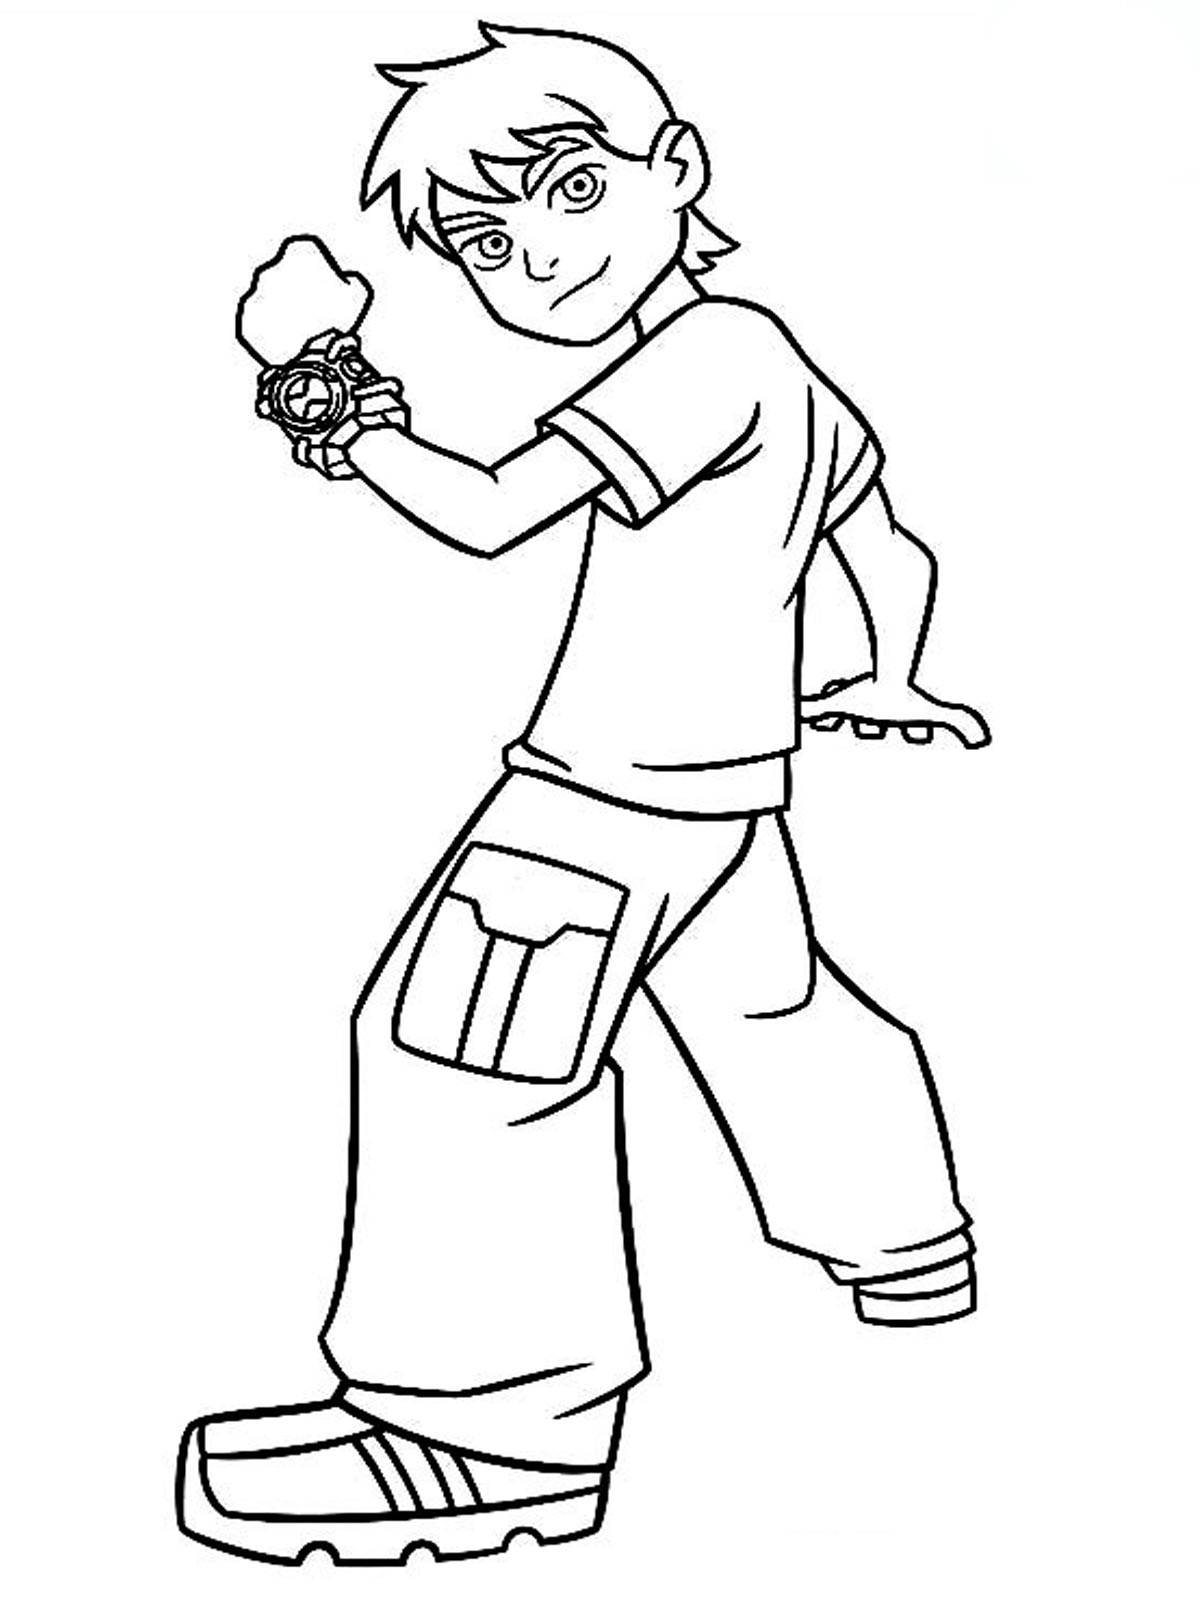 coloring pages free online - photo#11